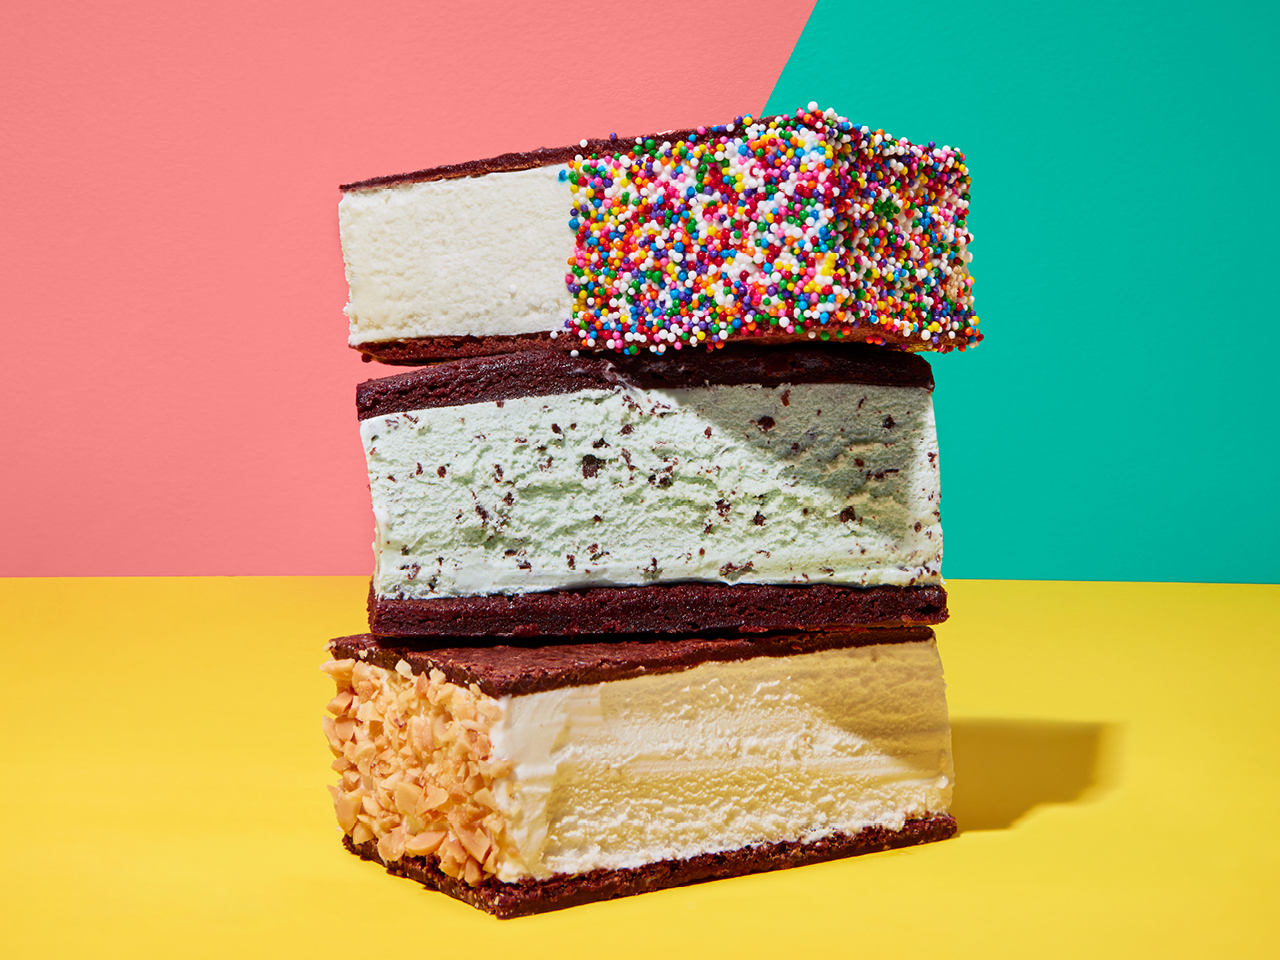 A stack of ice cream sandwiches, with different types of ice cream, on chocolate wafers; one is dipped into sprinkles, one into coconut